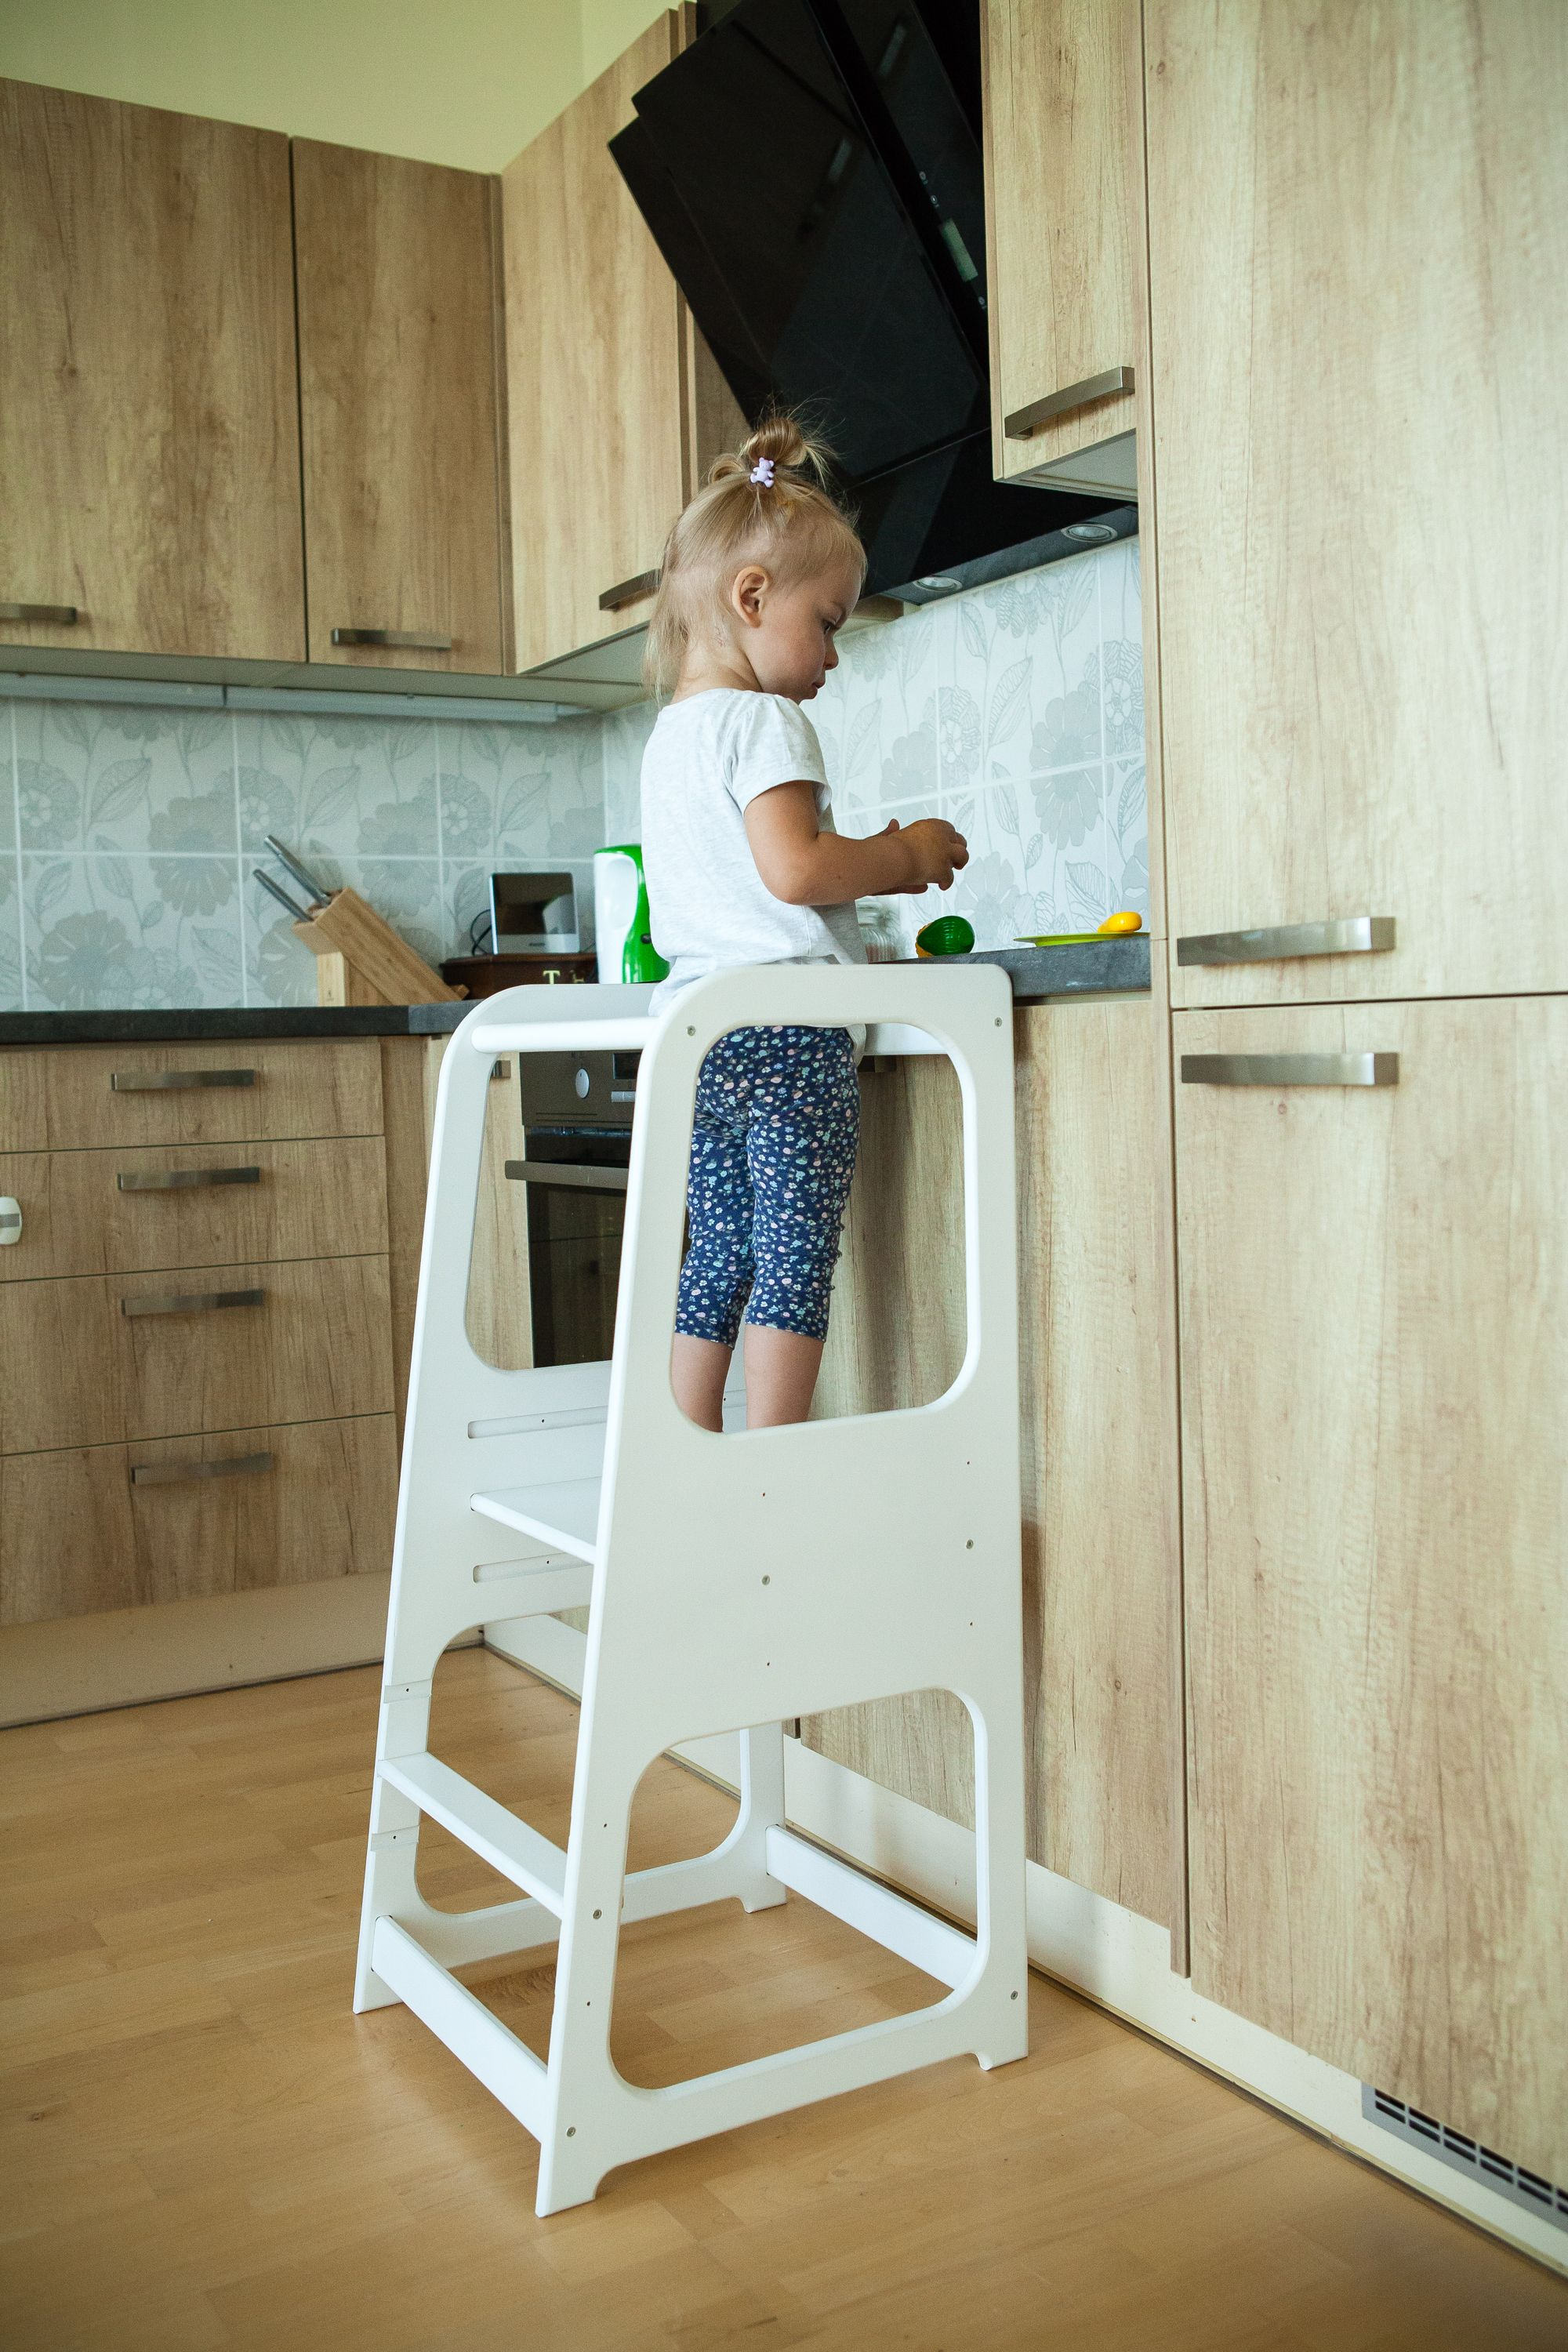 Kitchen Helper Tower Kitchen Stool Safety Stool Toddler Step Stool